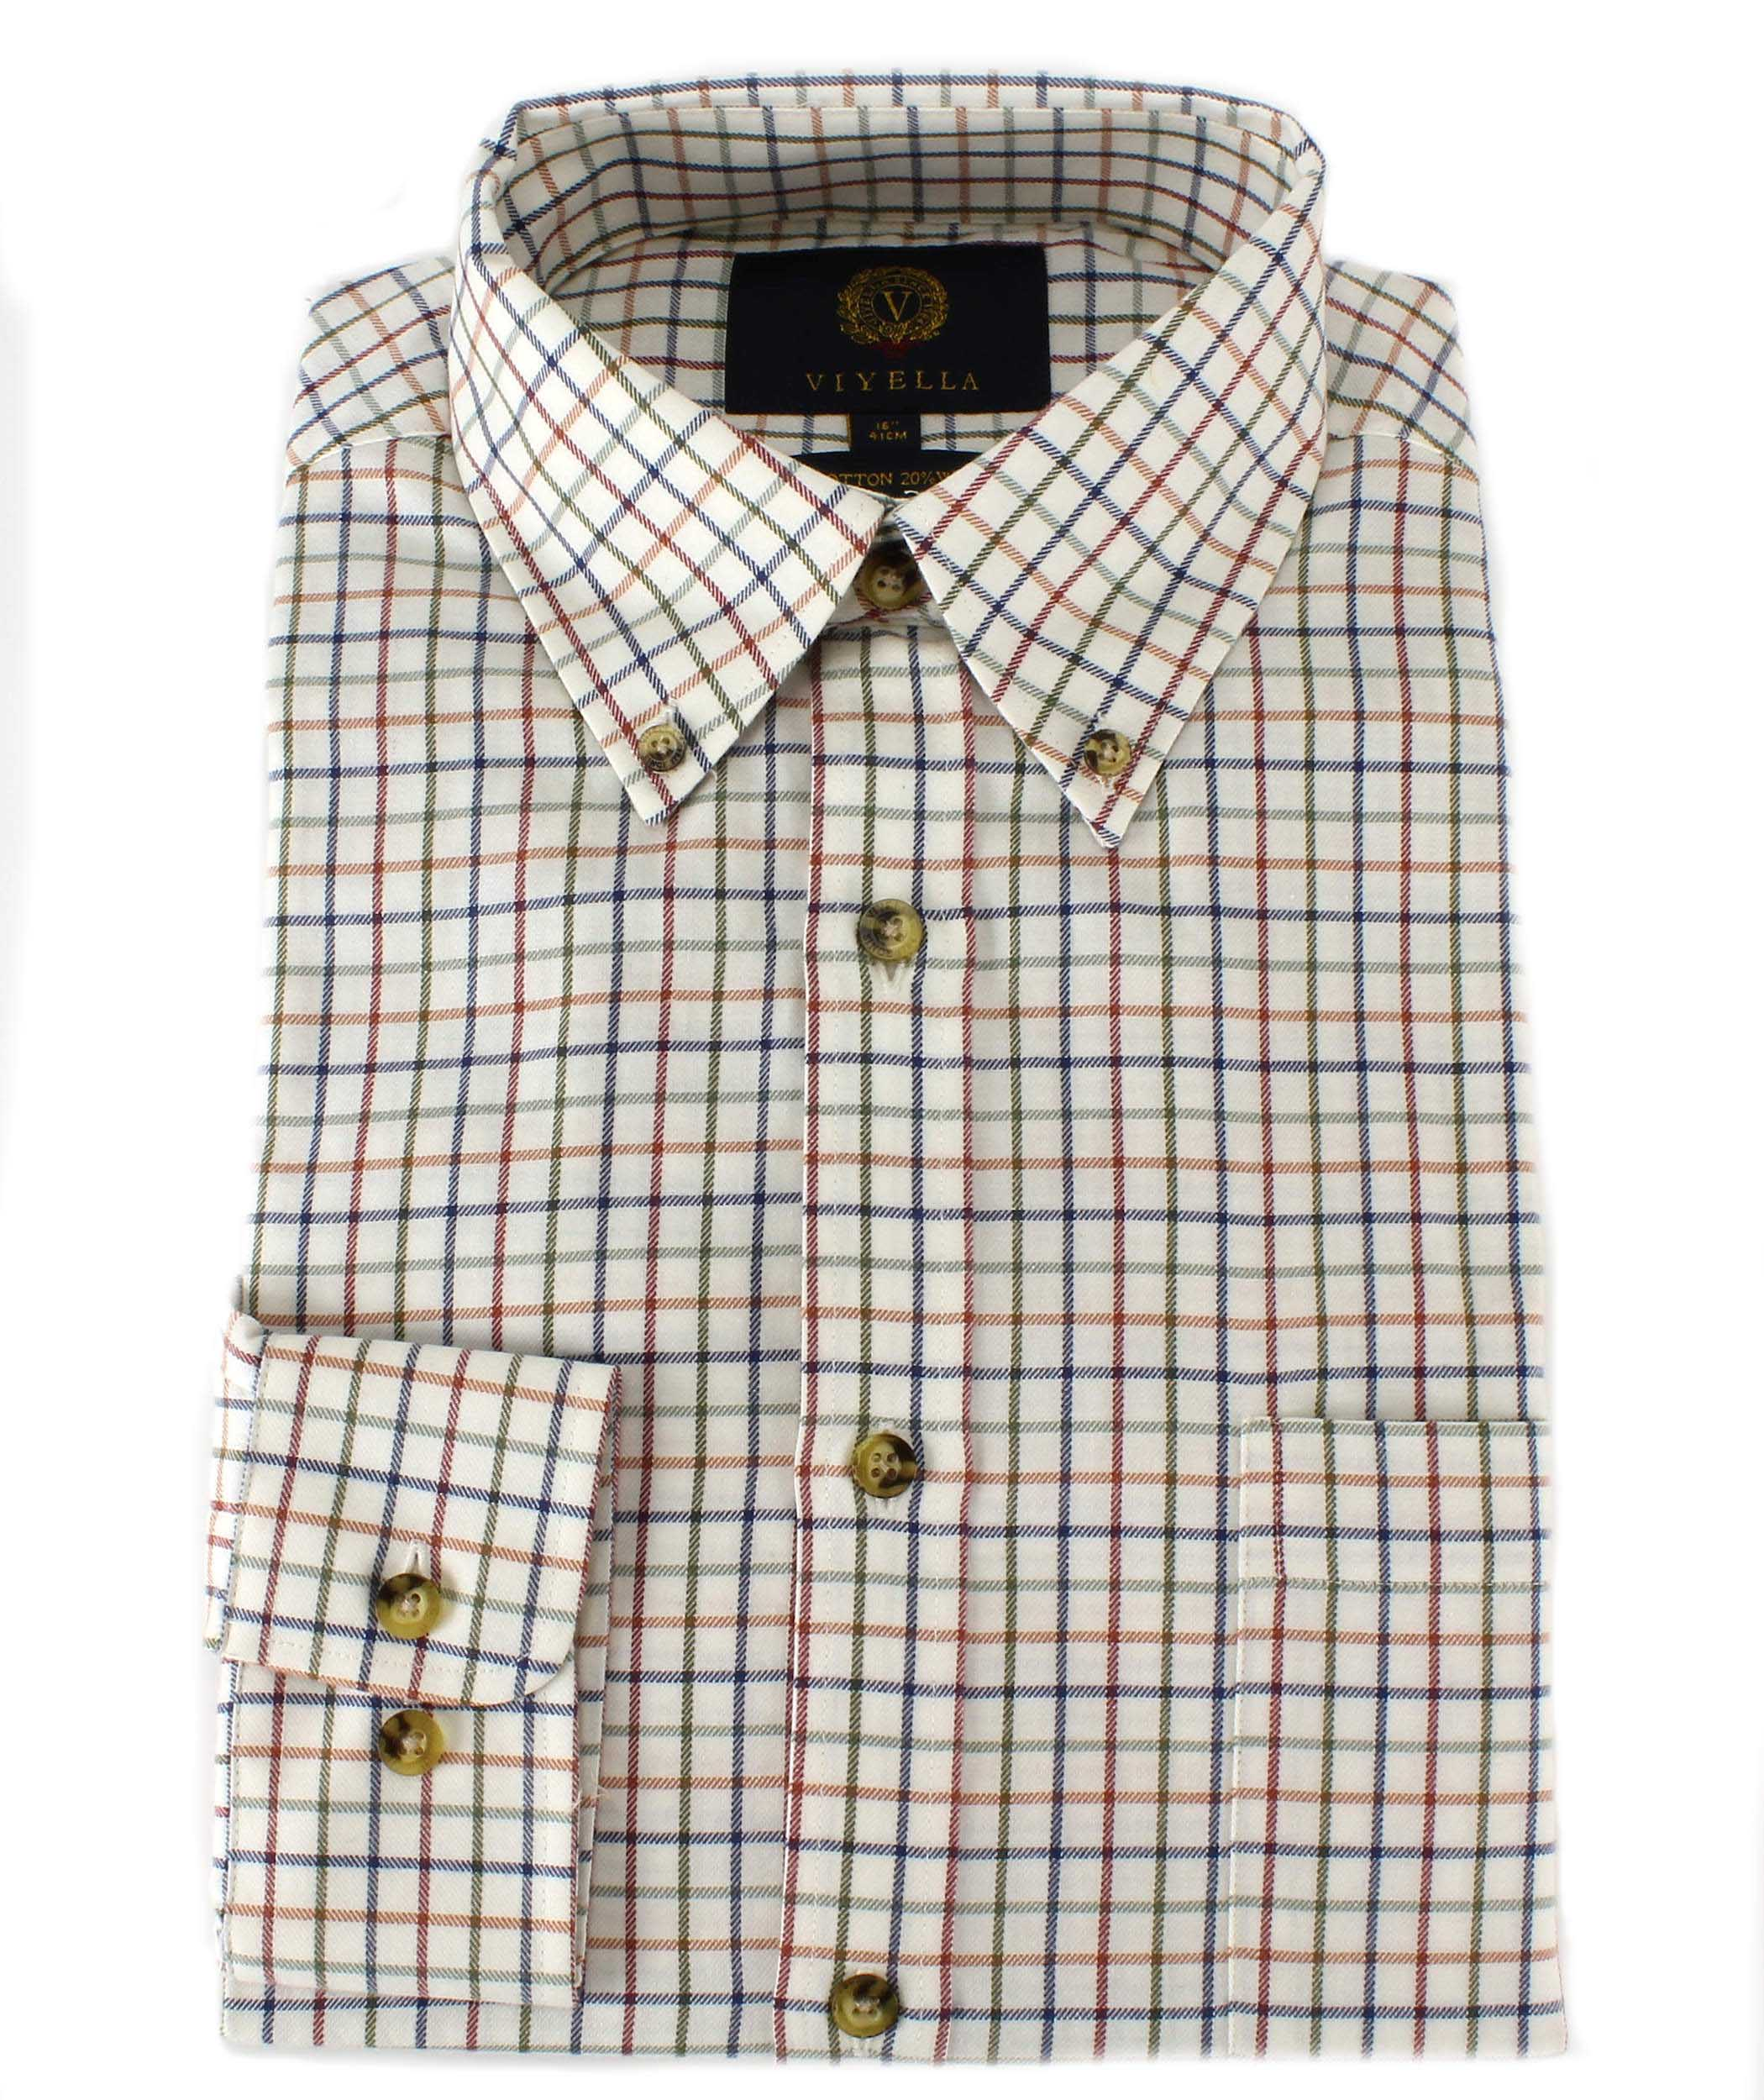 Viyella tattersall shirt with button down collar 80 for Wool button down shirt